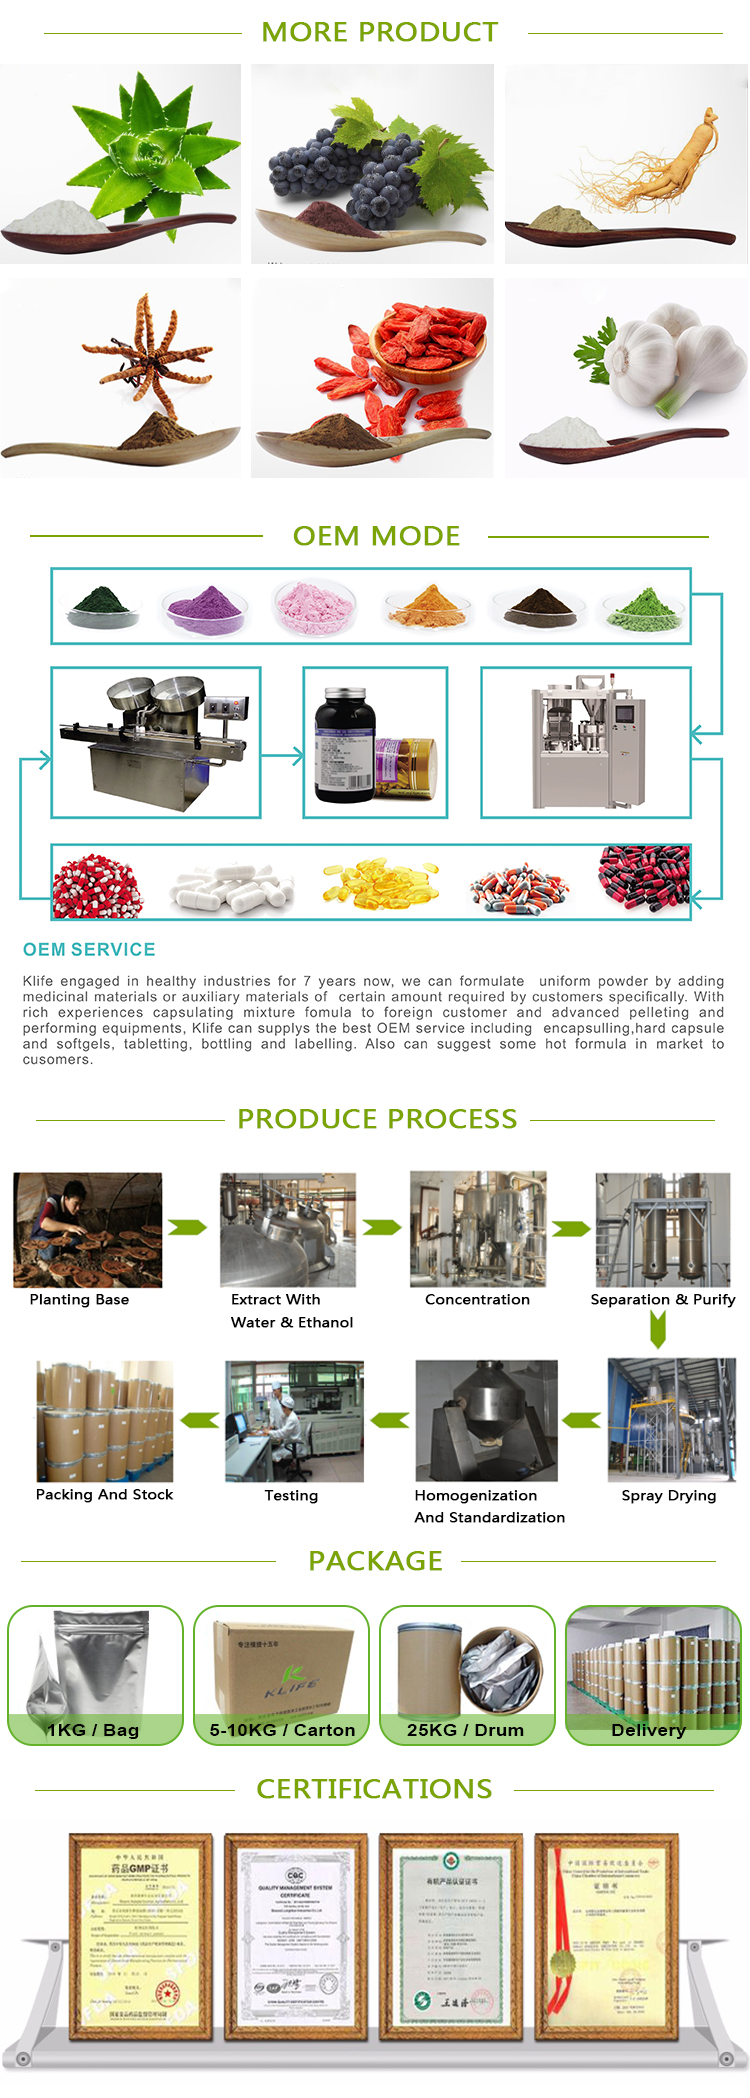 GRAPE SEED EXTRACT 2-pintu.jpg